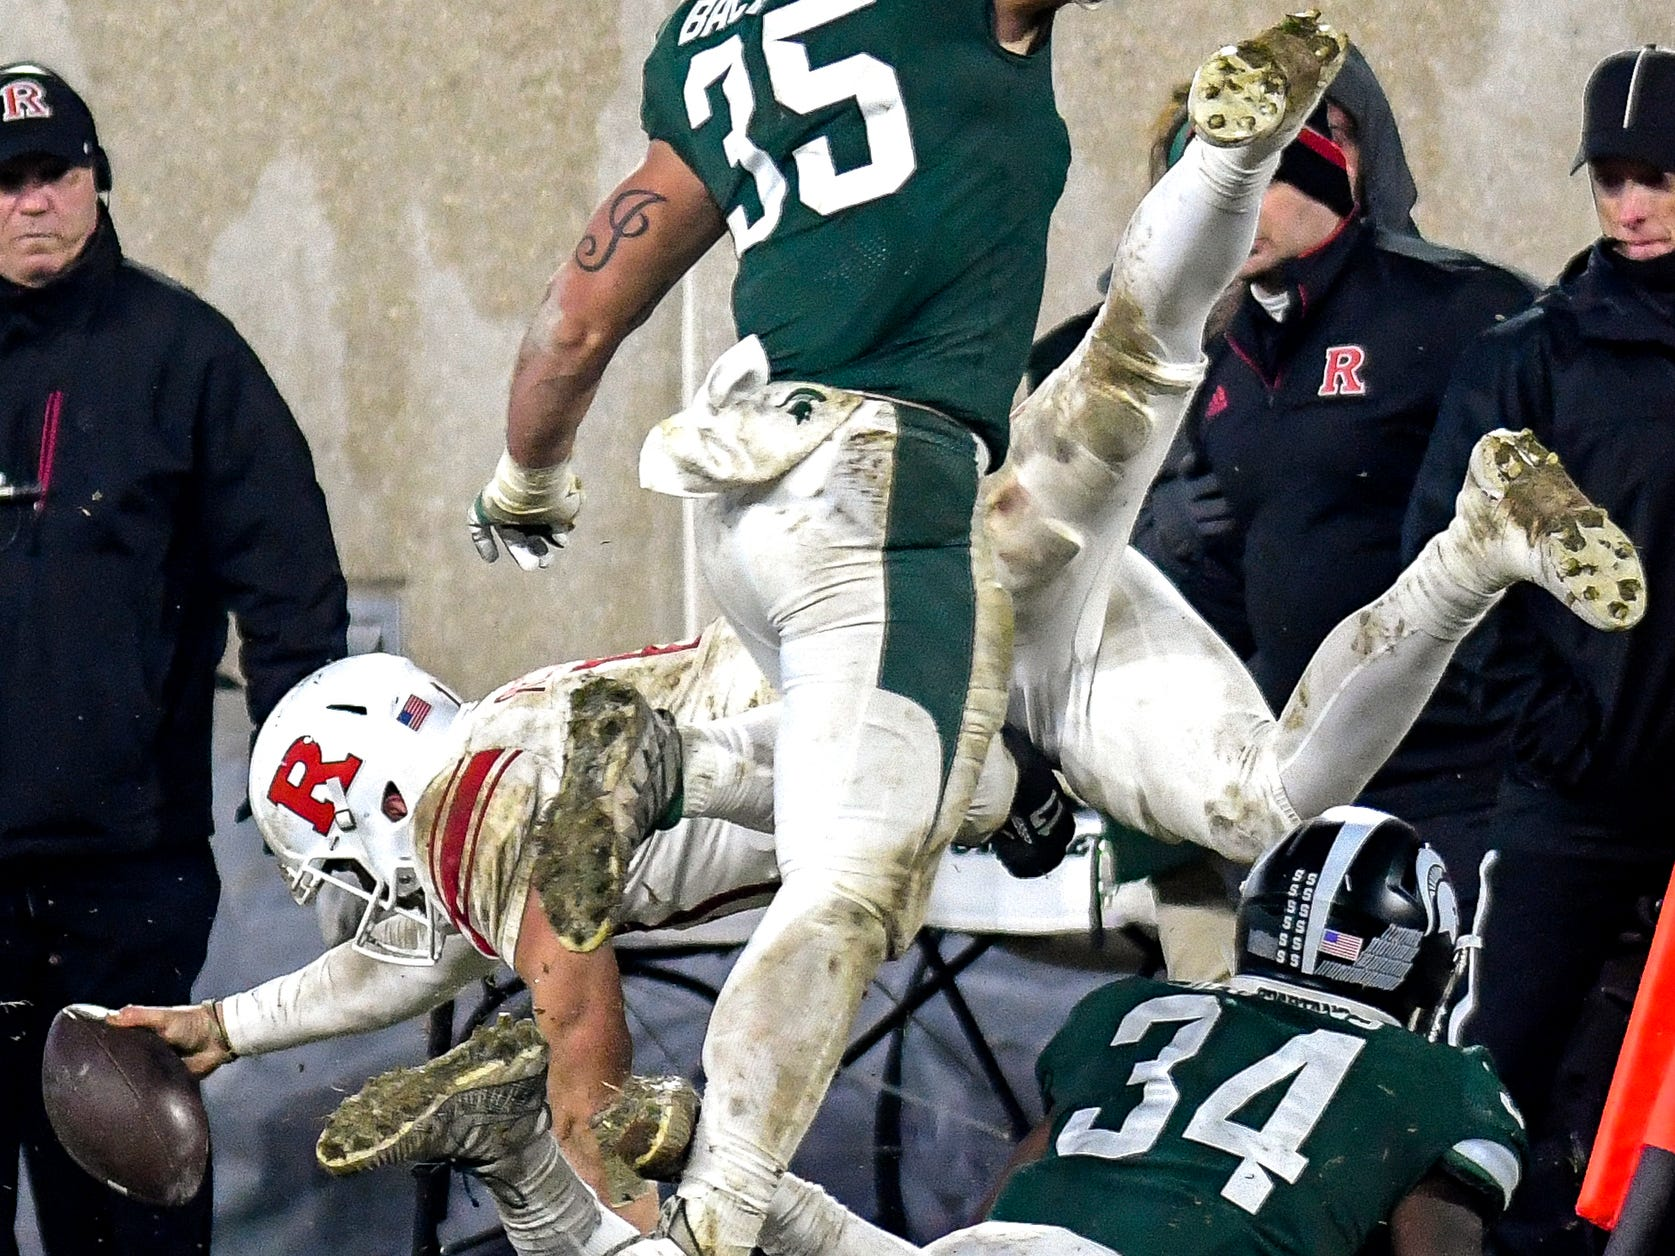 Rutgers quarterback Giovanni Rescigno dives as Michigan State's Joe Bachie and Antjuan Simmons, below, defend during the fourth quarter on Saturday, Nov. 24, 2018, at Spartan Stadium in East Lansing.